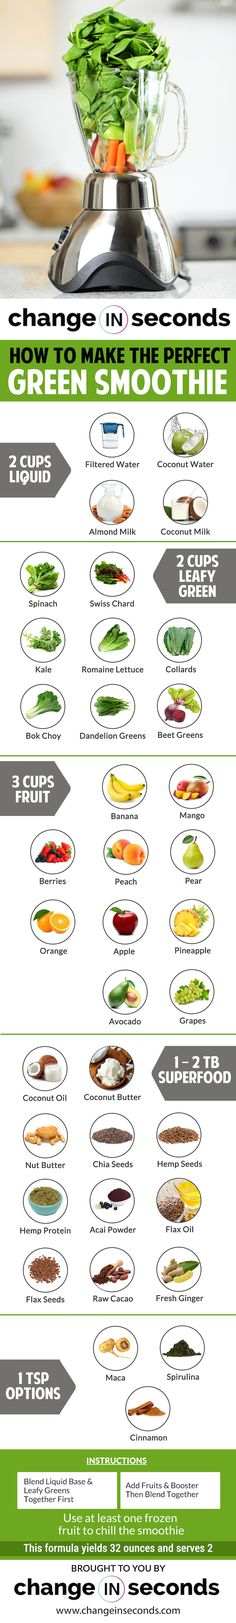 How To Make The Perfect Green Smoothie https://www.changeinseconds.com/how-to-make-the-perfect-green-smoothie/ #greensmoothie #greensmoothierecipes #smoothierecipes #smoothies